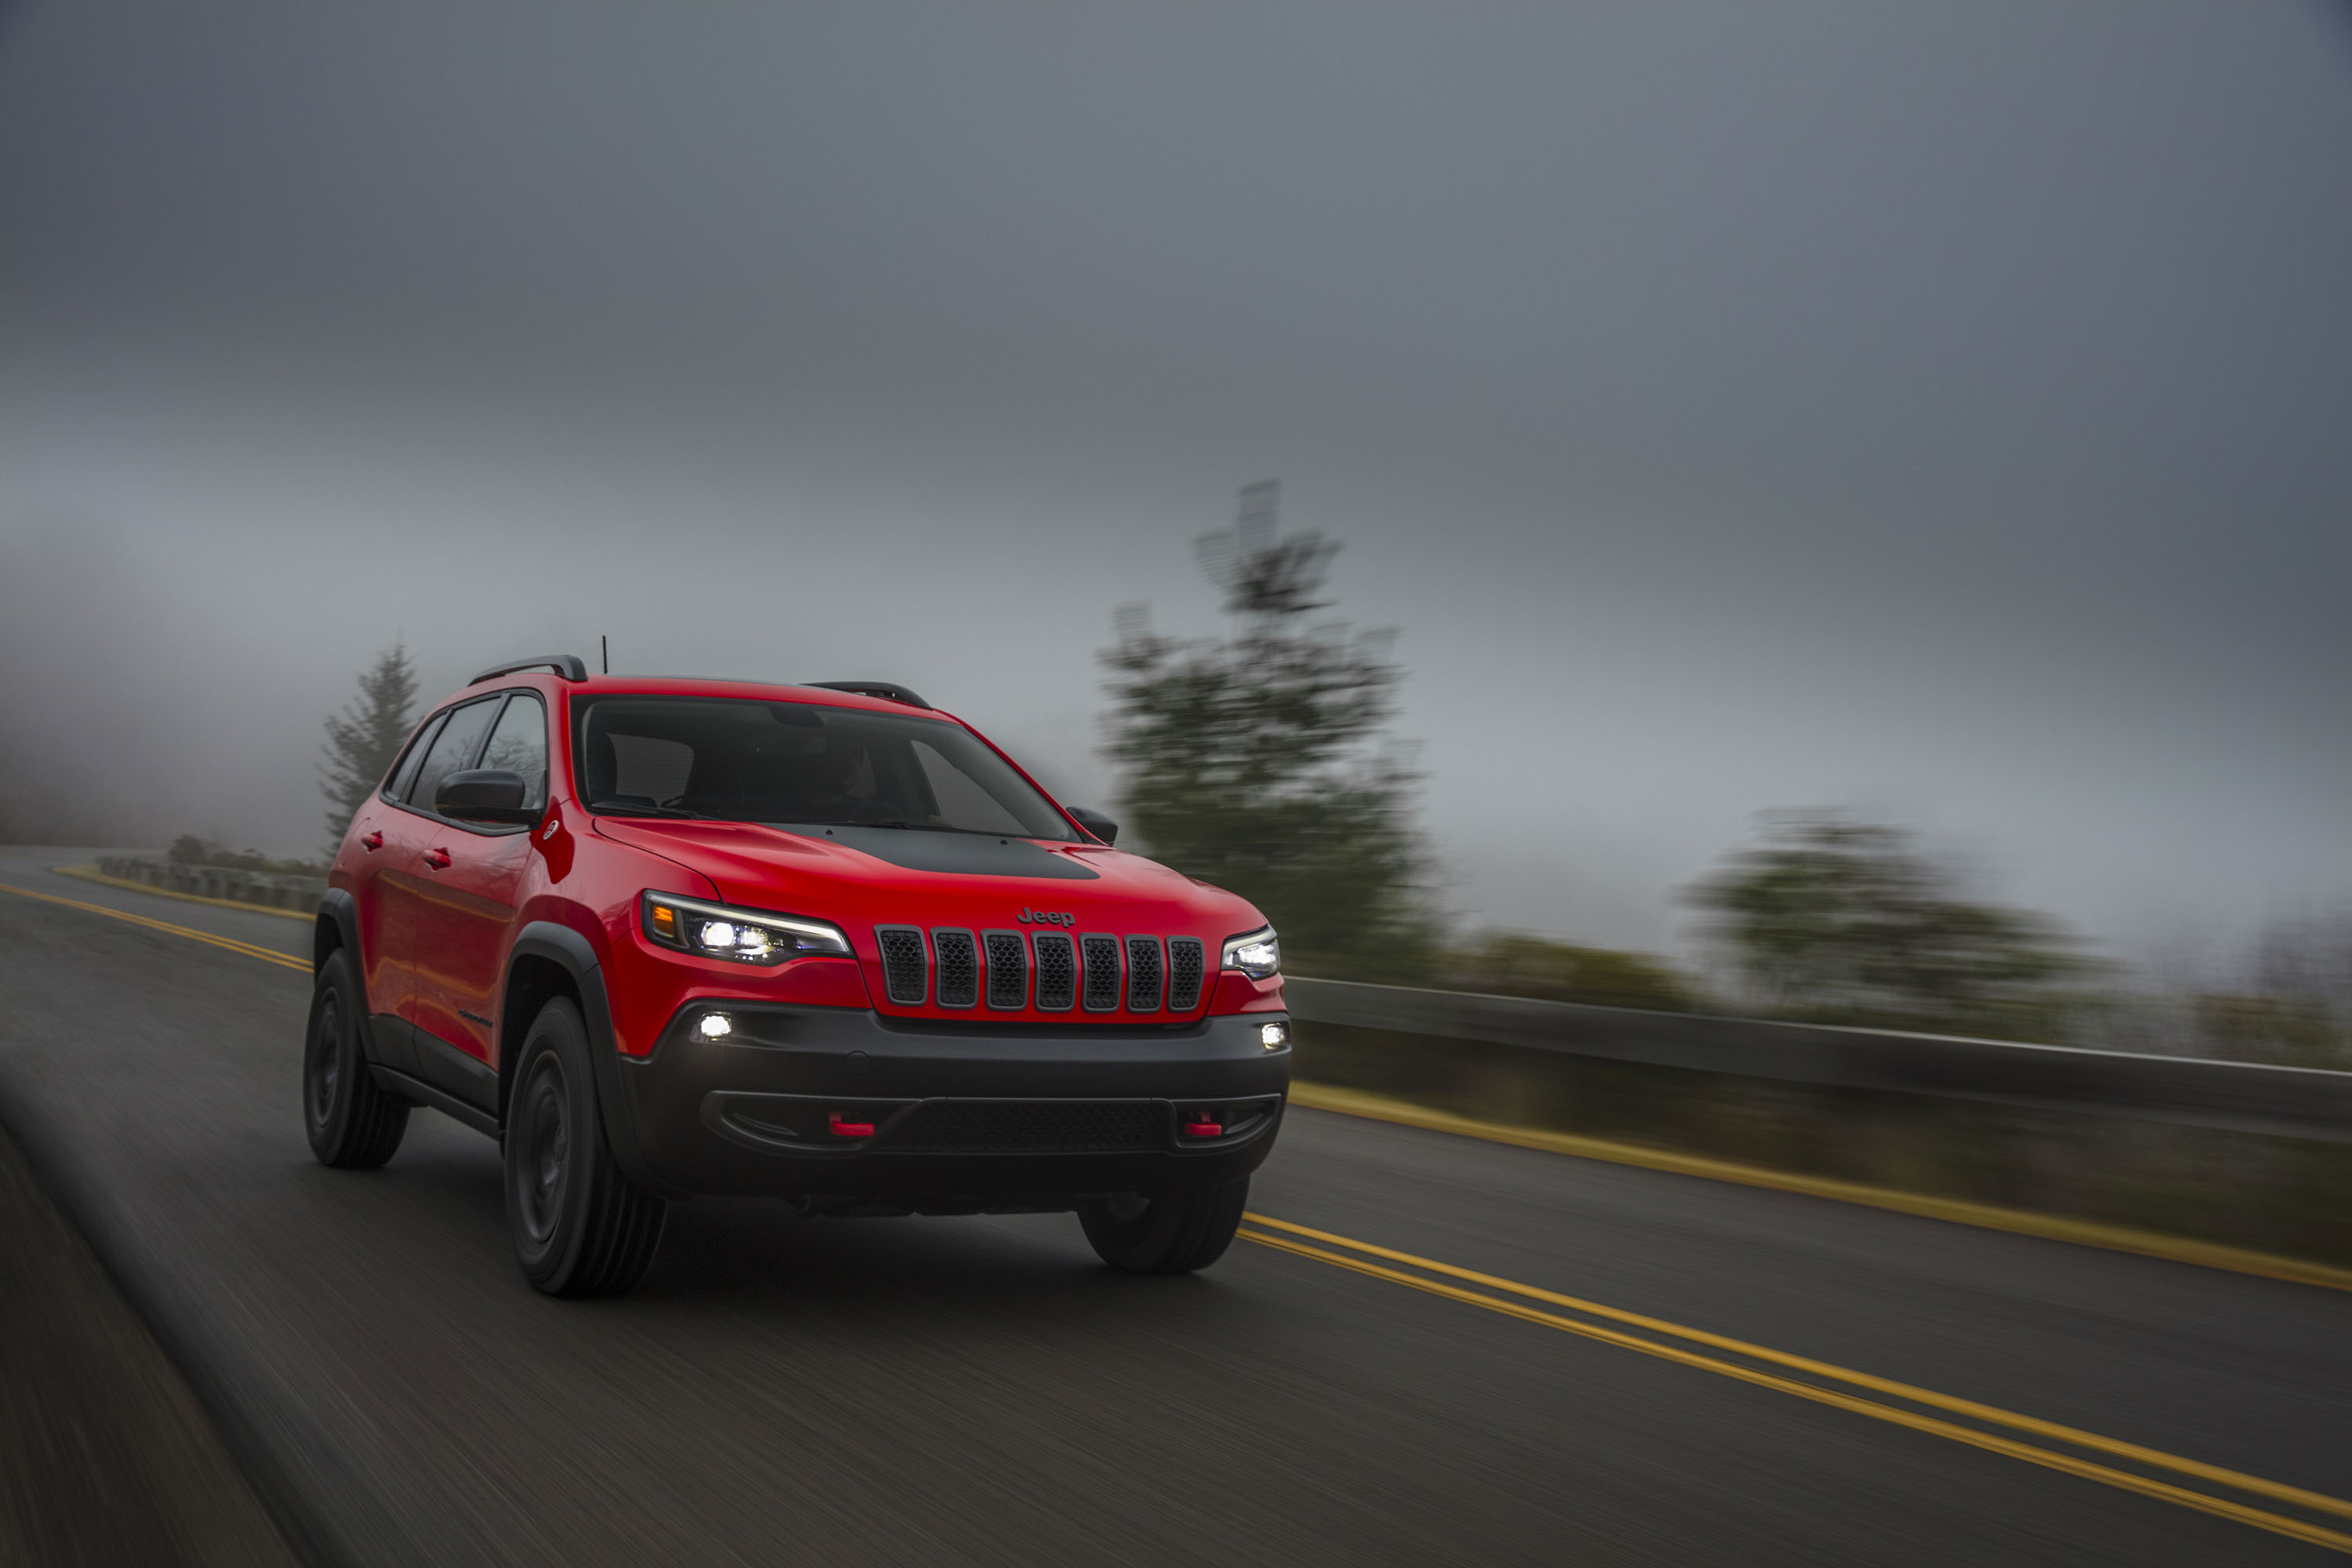 cherokee liberty priced price pricing jeep cars story chrysler less new than money